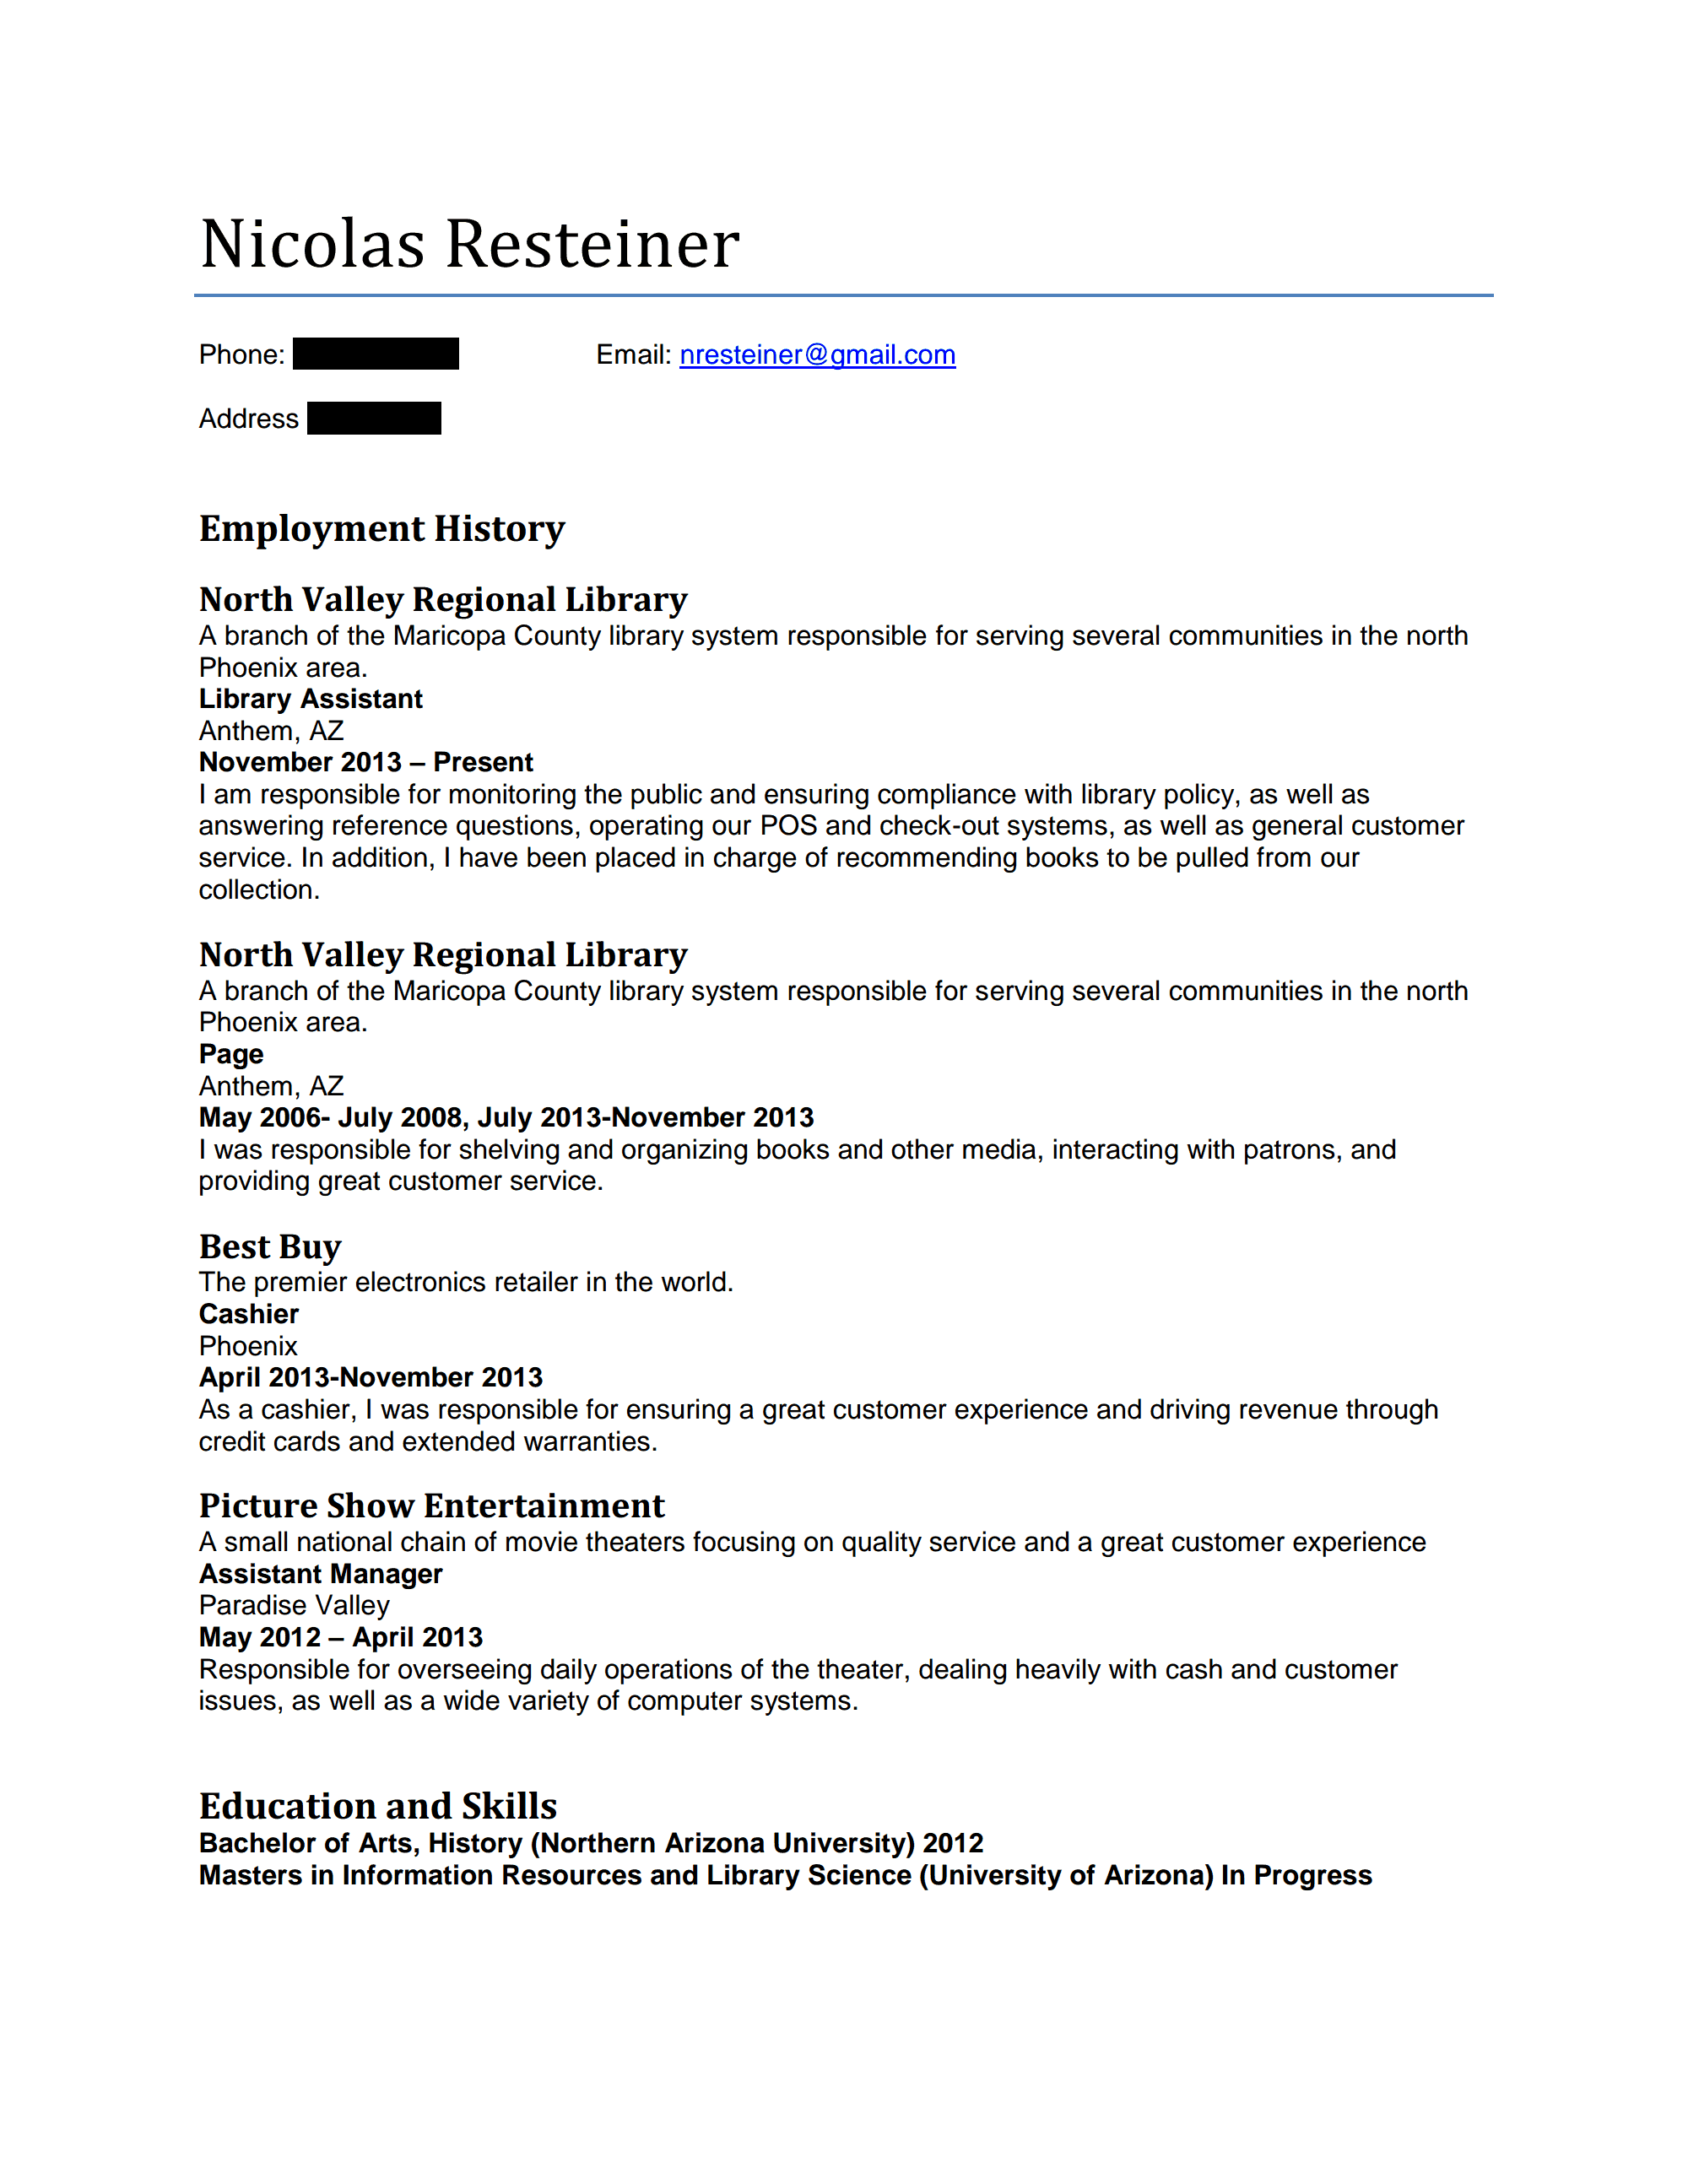 buy side resume discovery math homework help private equity analyst resume